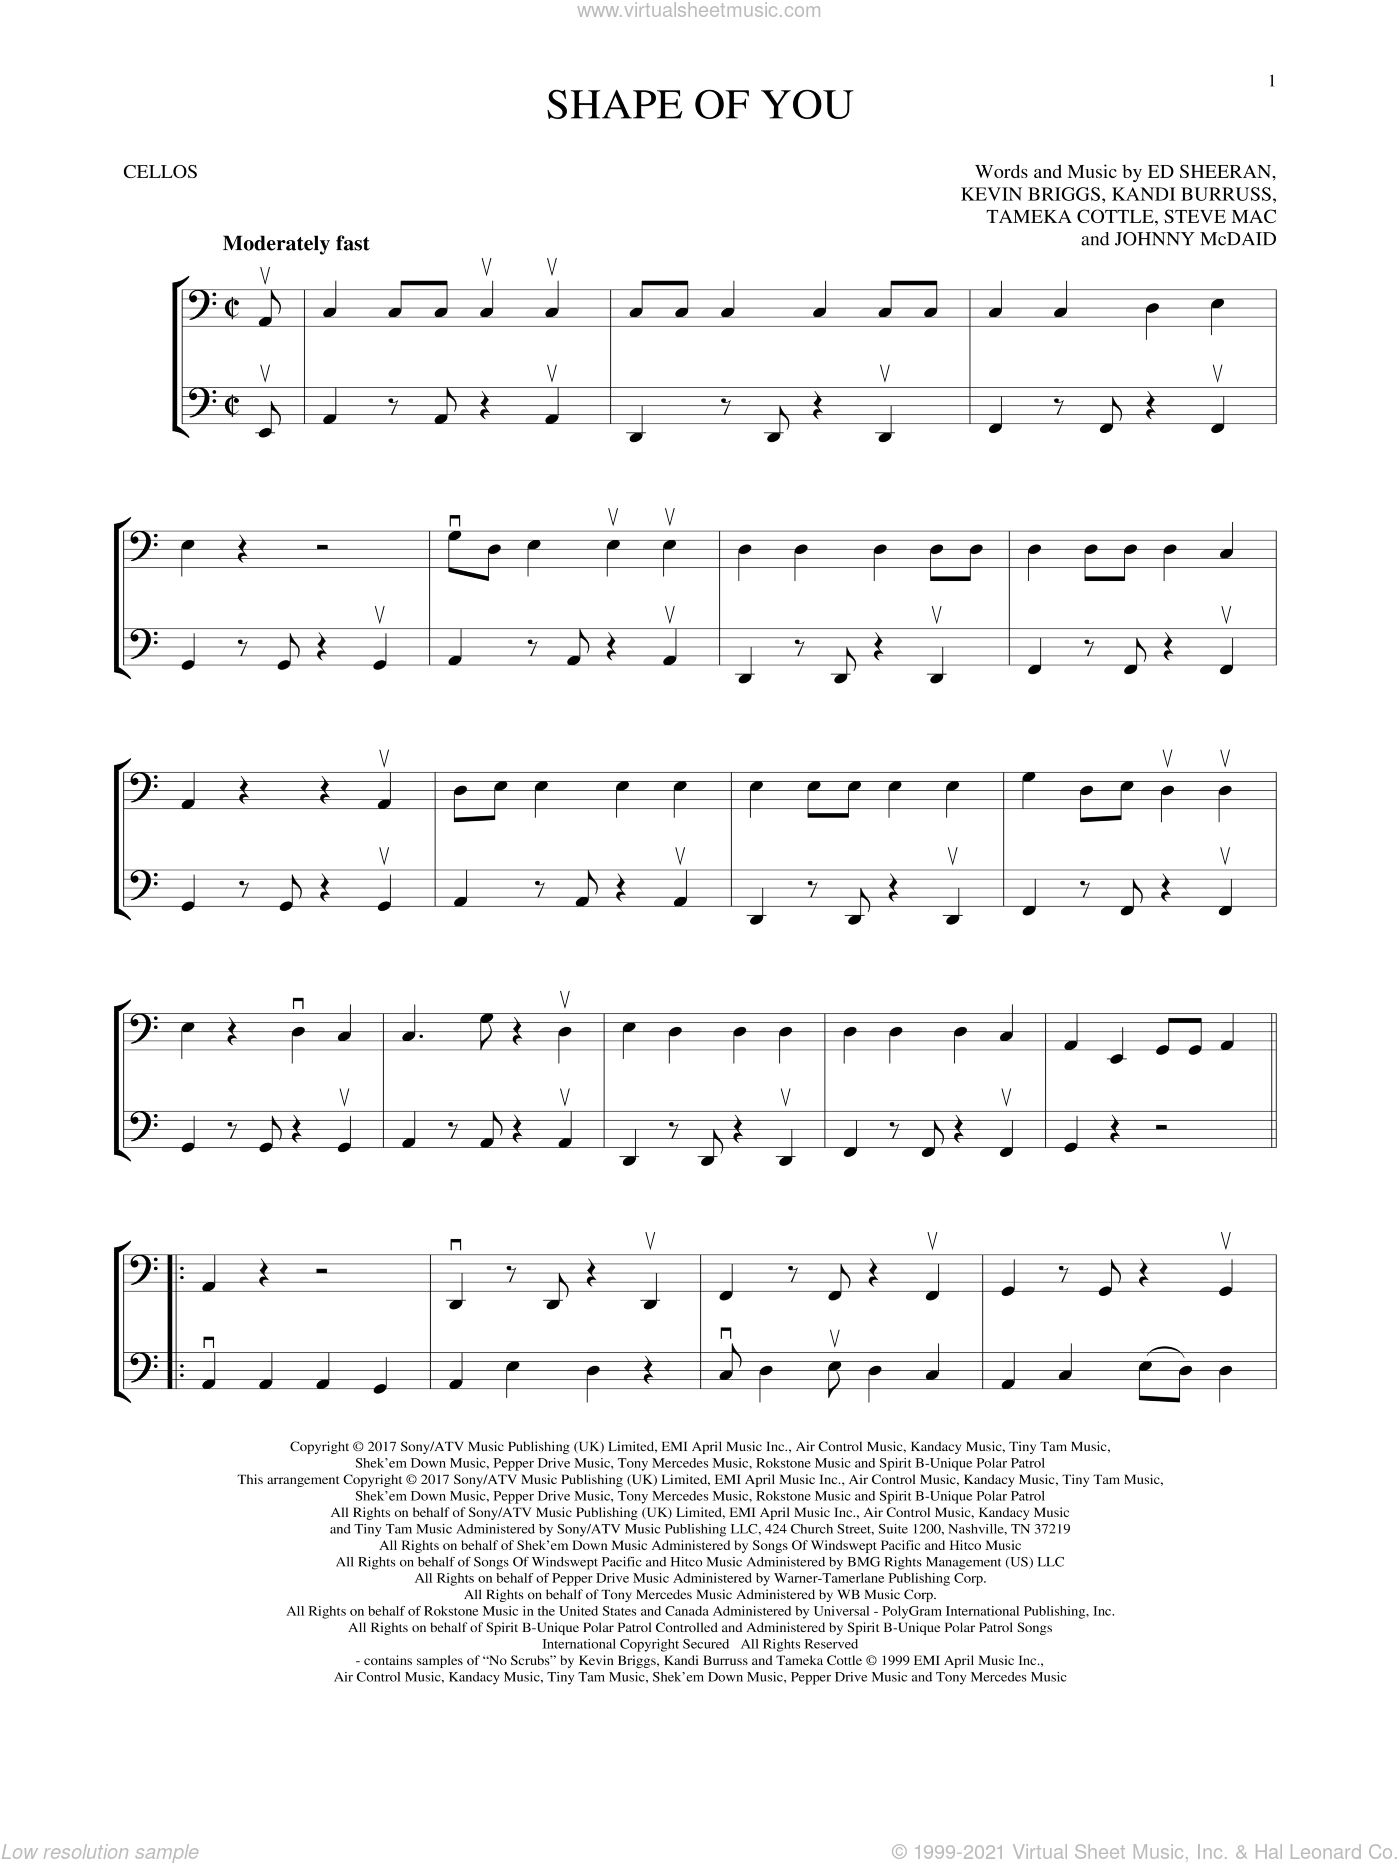 Shape Of You sheet music for two cellos (duet, duets) by Ed Sheeran, Johnny McDaid, Kandi Burruss, Kevin Briggs, Steve Mac and Tameka Cottle, intermediate skill level